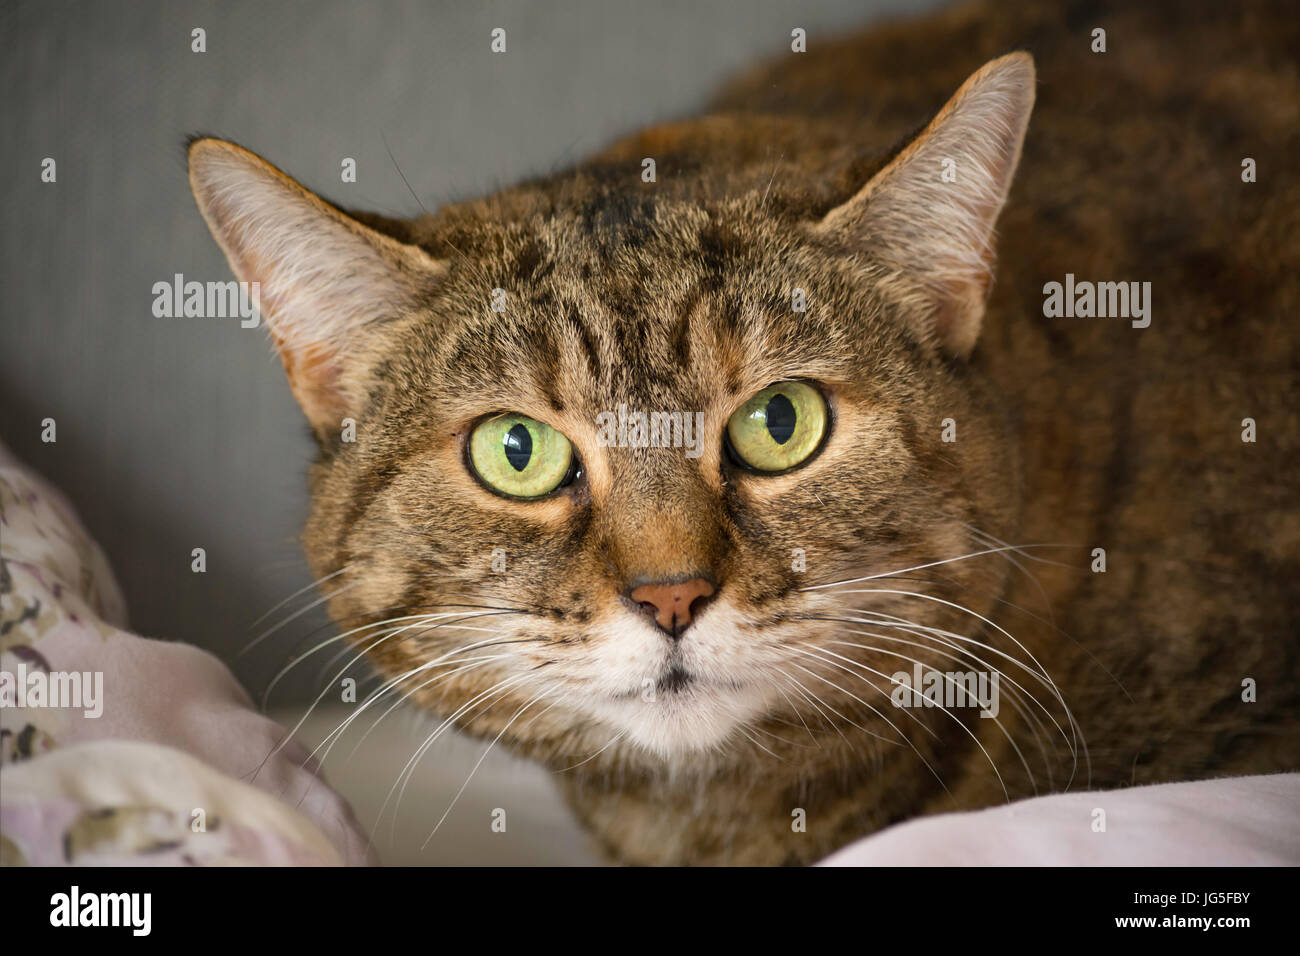 Tabby cat resting with lovely green eyes Stock Photo